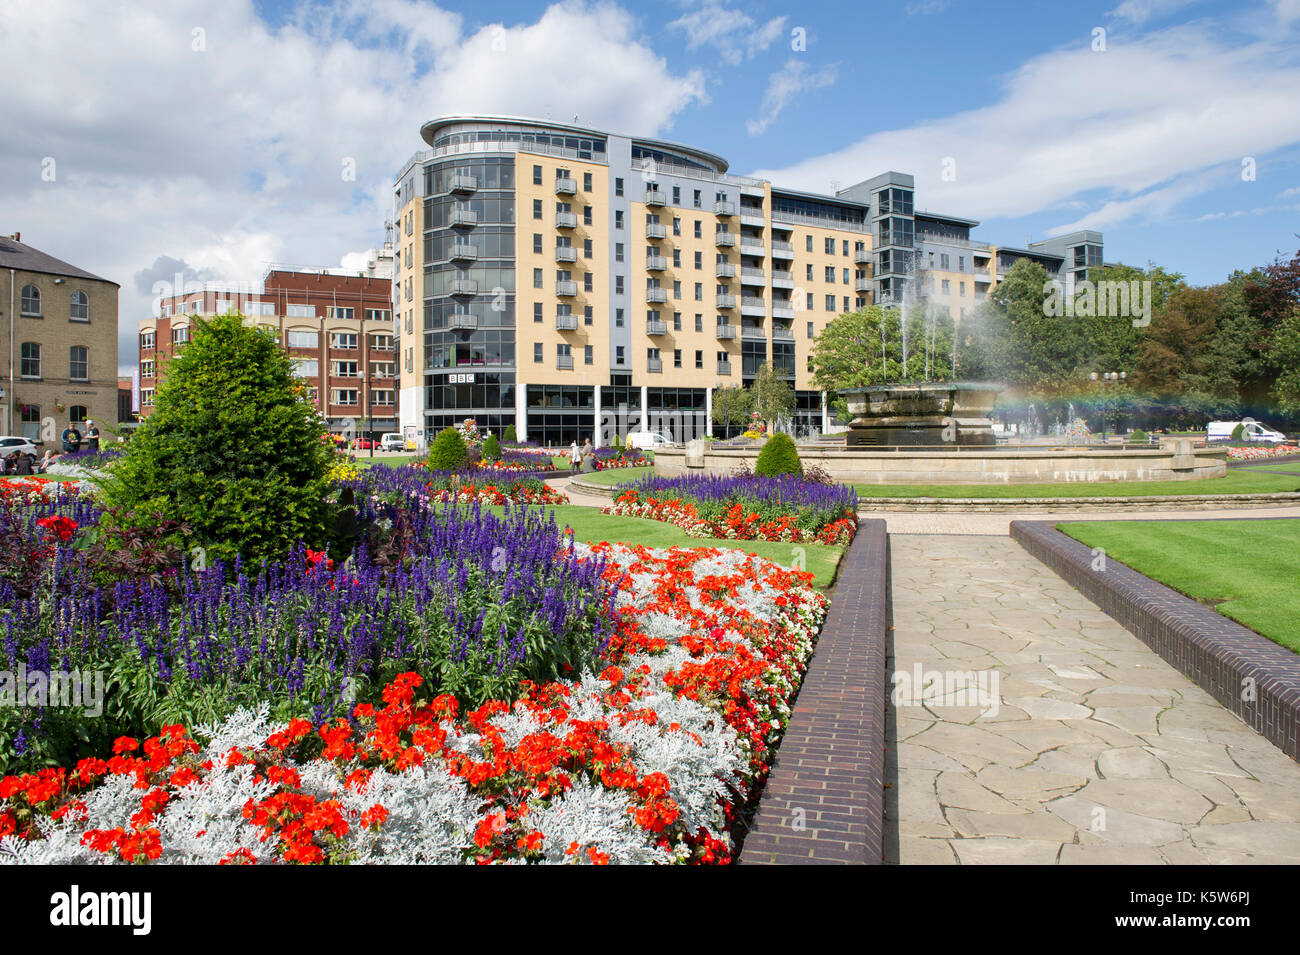 The BBC Building & Fountains of Queens Gardens in Kingston Upon Hull, UK City Of Culture 2017 - Stock Image